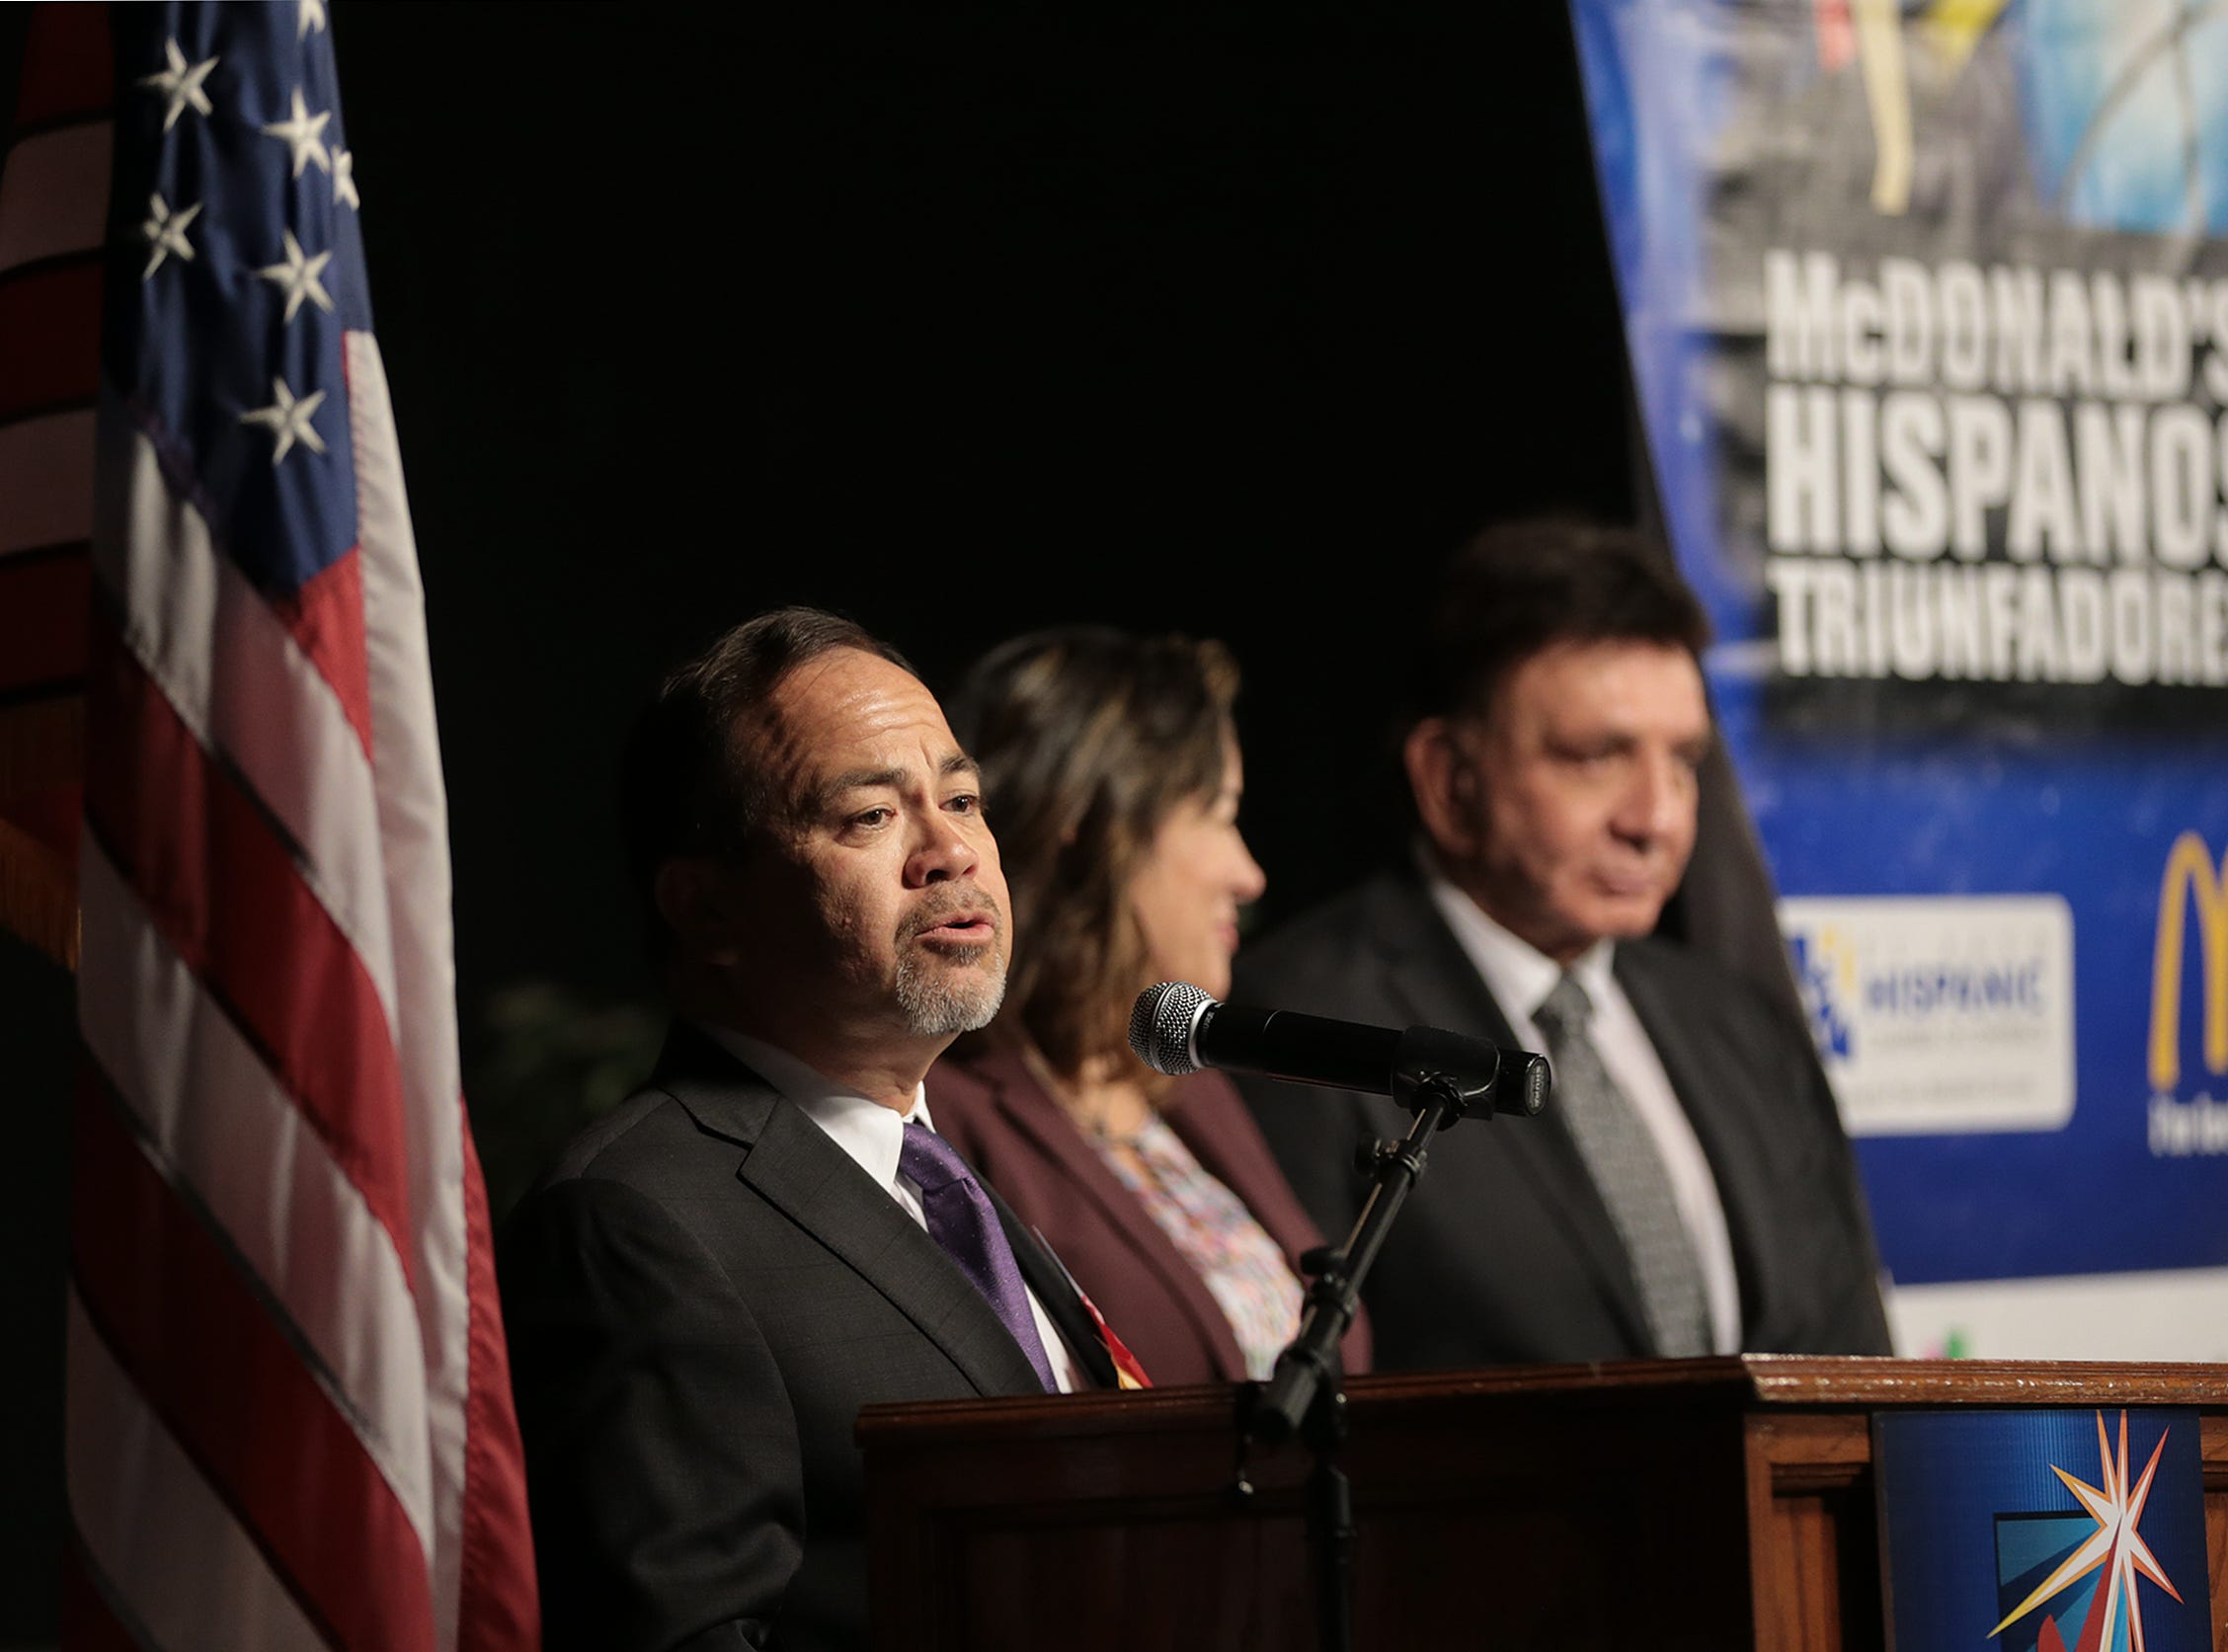 Art Fierro received an Hispanos Triunfadores Award for his work in education. Fierro sits on the EPCC board and has been recognized nationally for developing pathways for minorities and under-served students in the borderland.